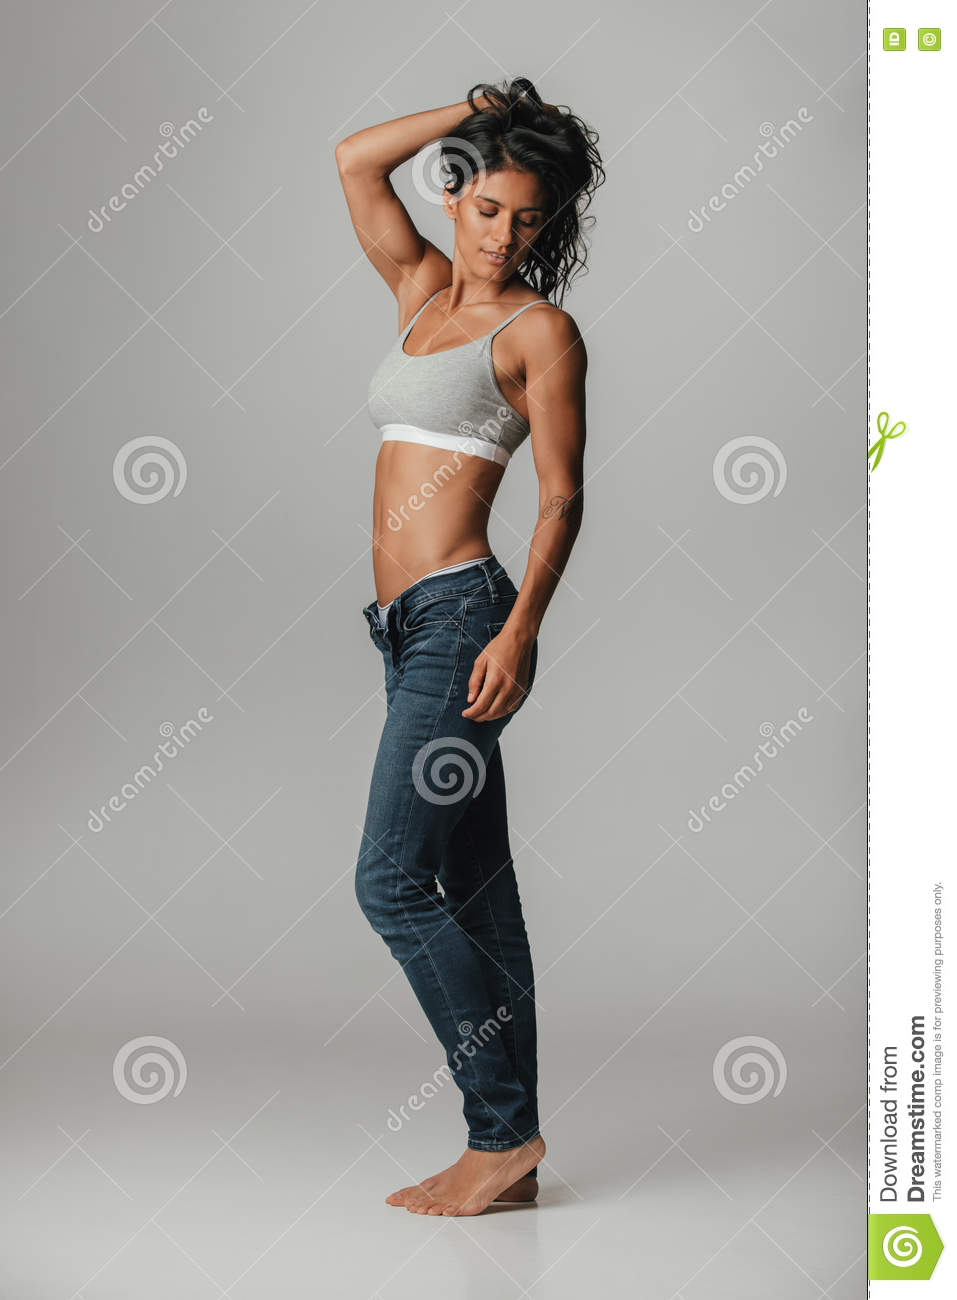 Pretty Athletic Woman With Jeans Strikes A Pose Stock Photo Image